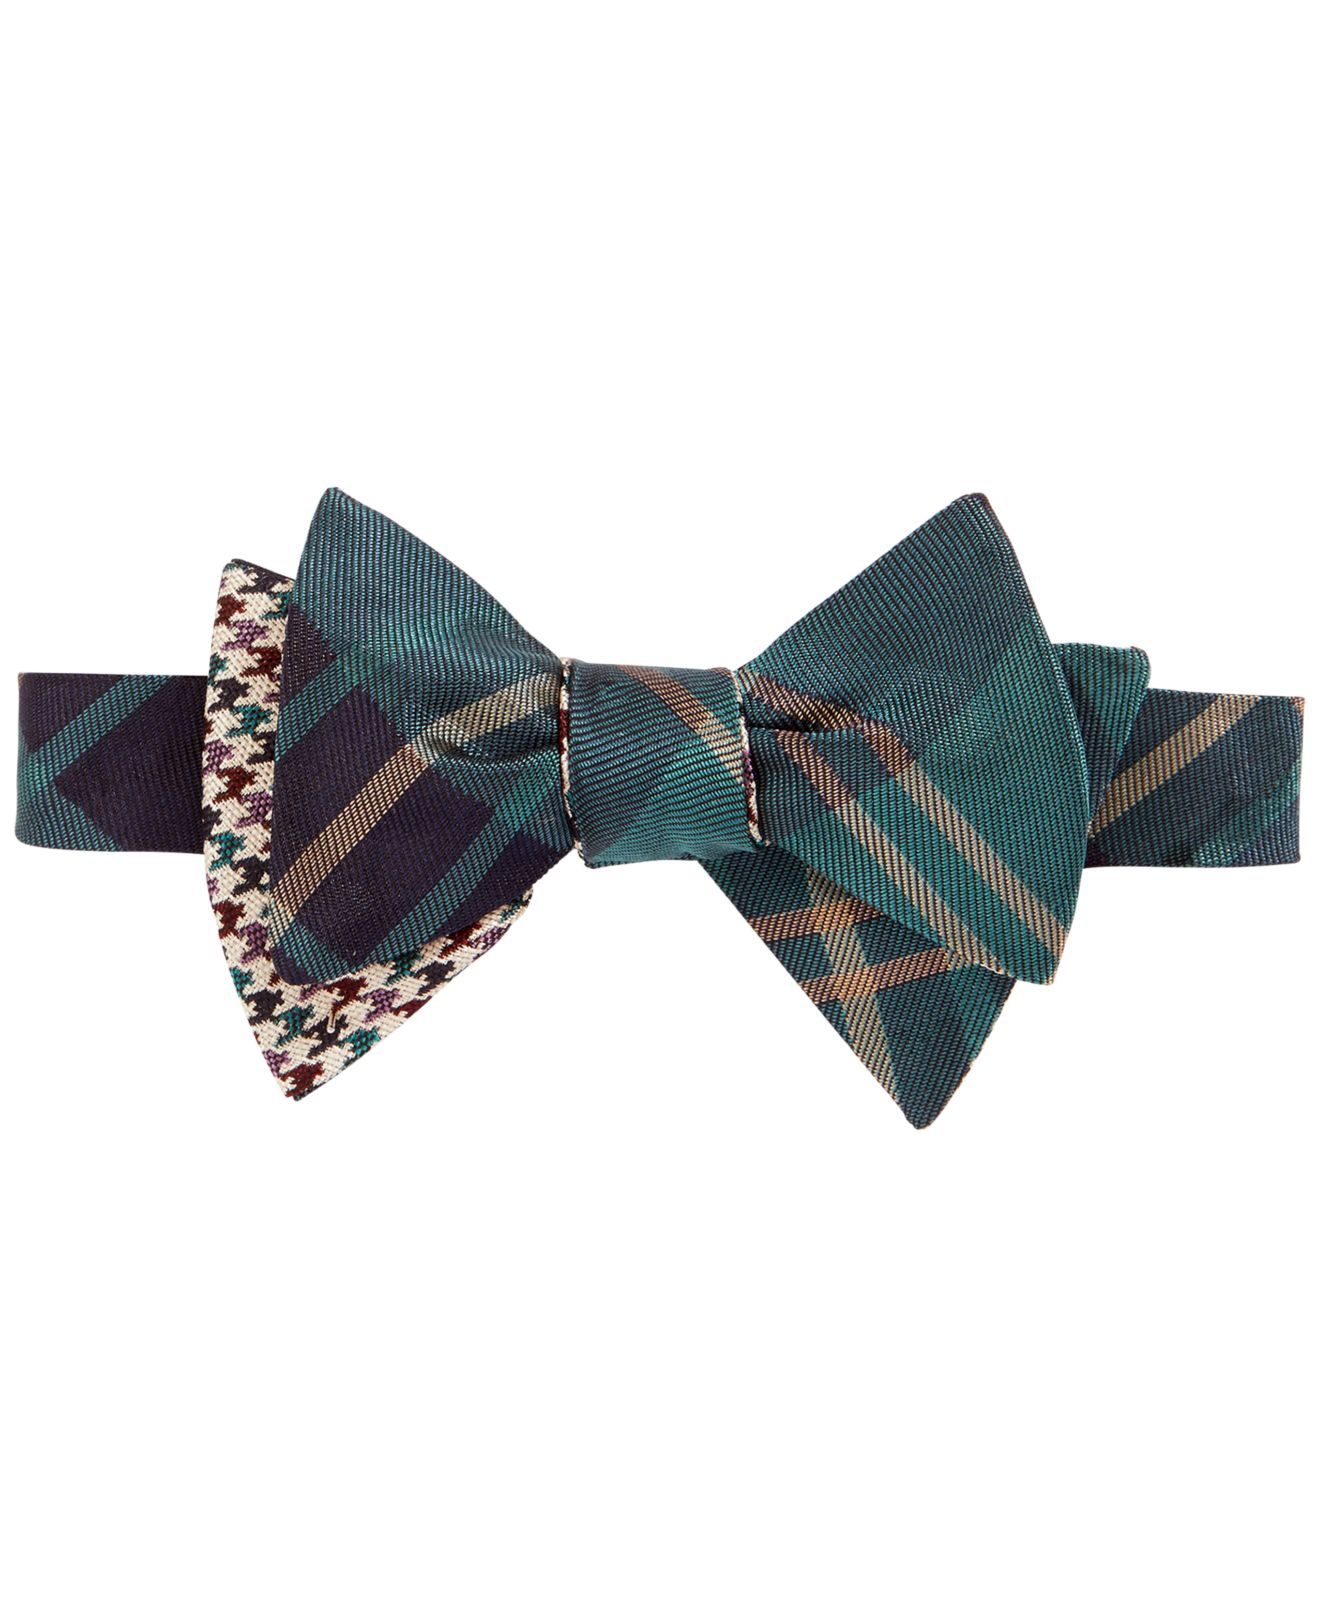 Brooks brothers Reversible Teal Plaid To-tie Bow Tie in ...